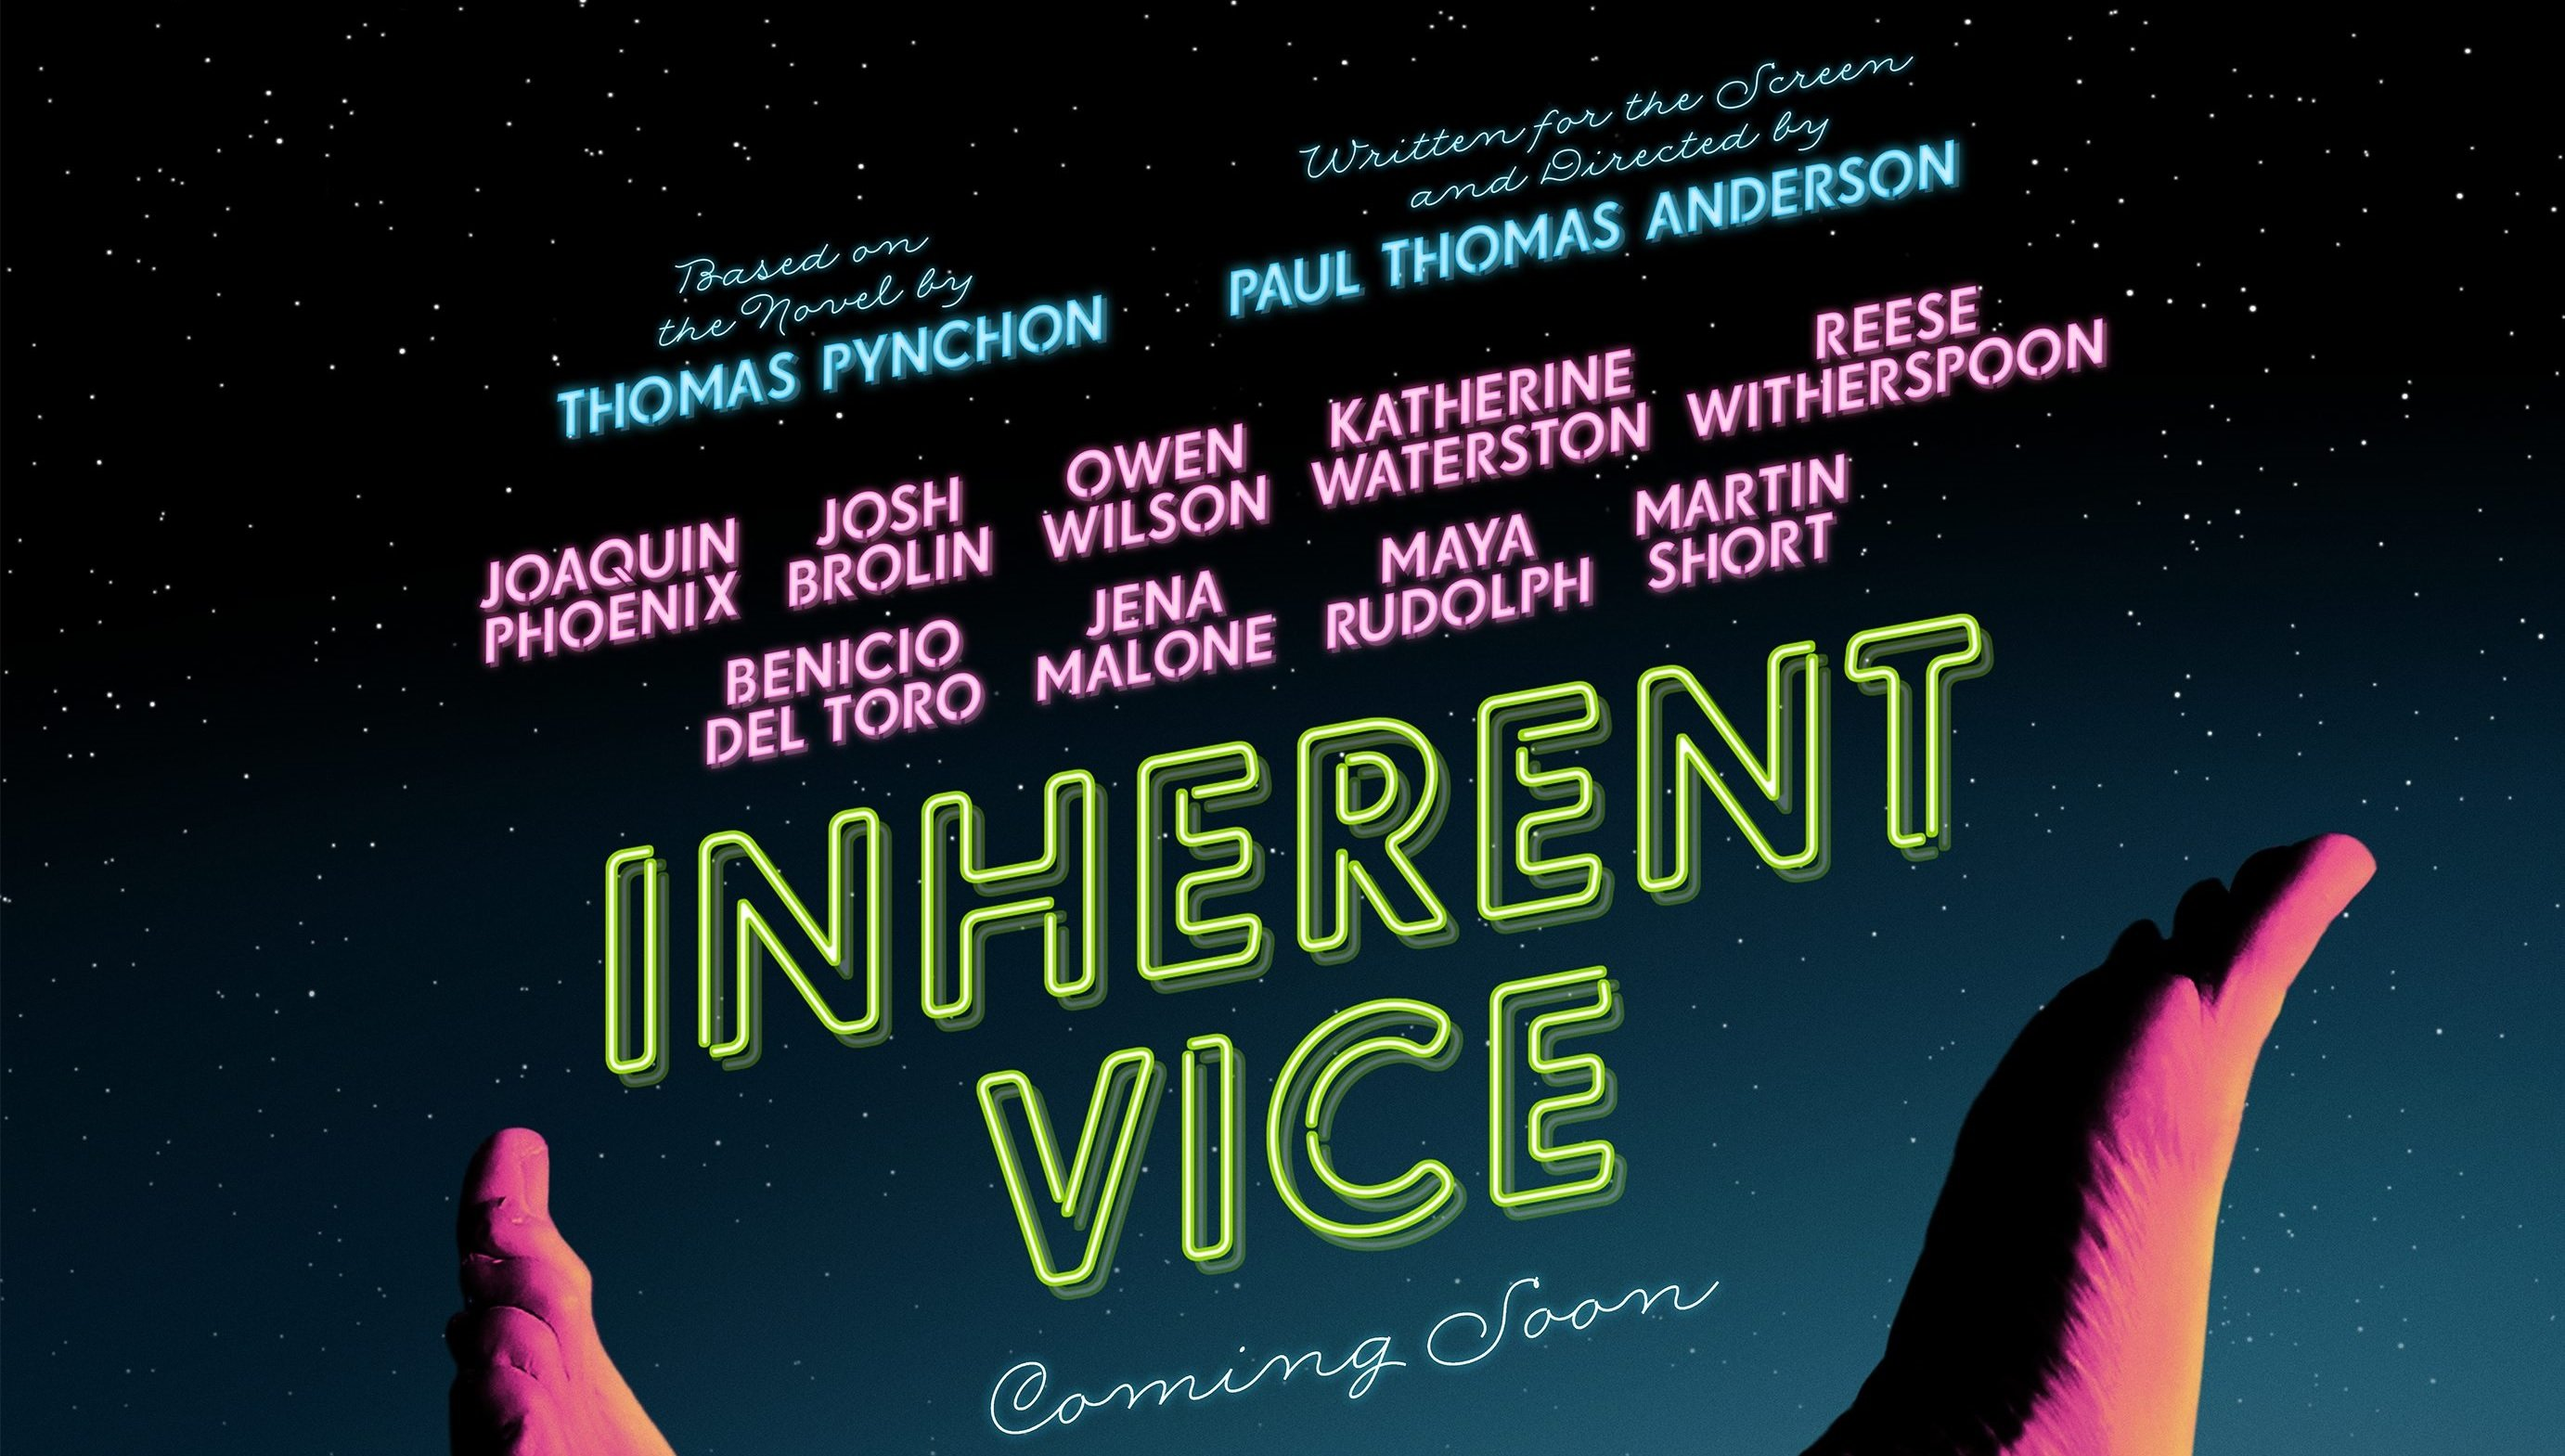 Inherent Vice Wallpaper Inherent Vice Comedy Crime